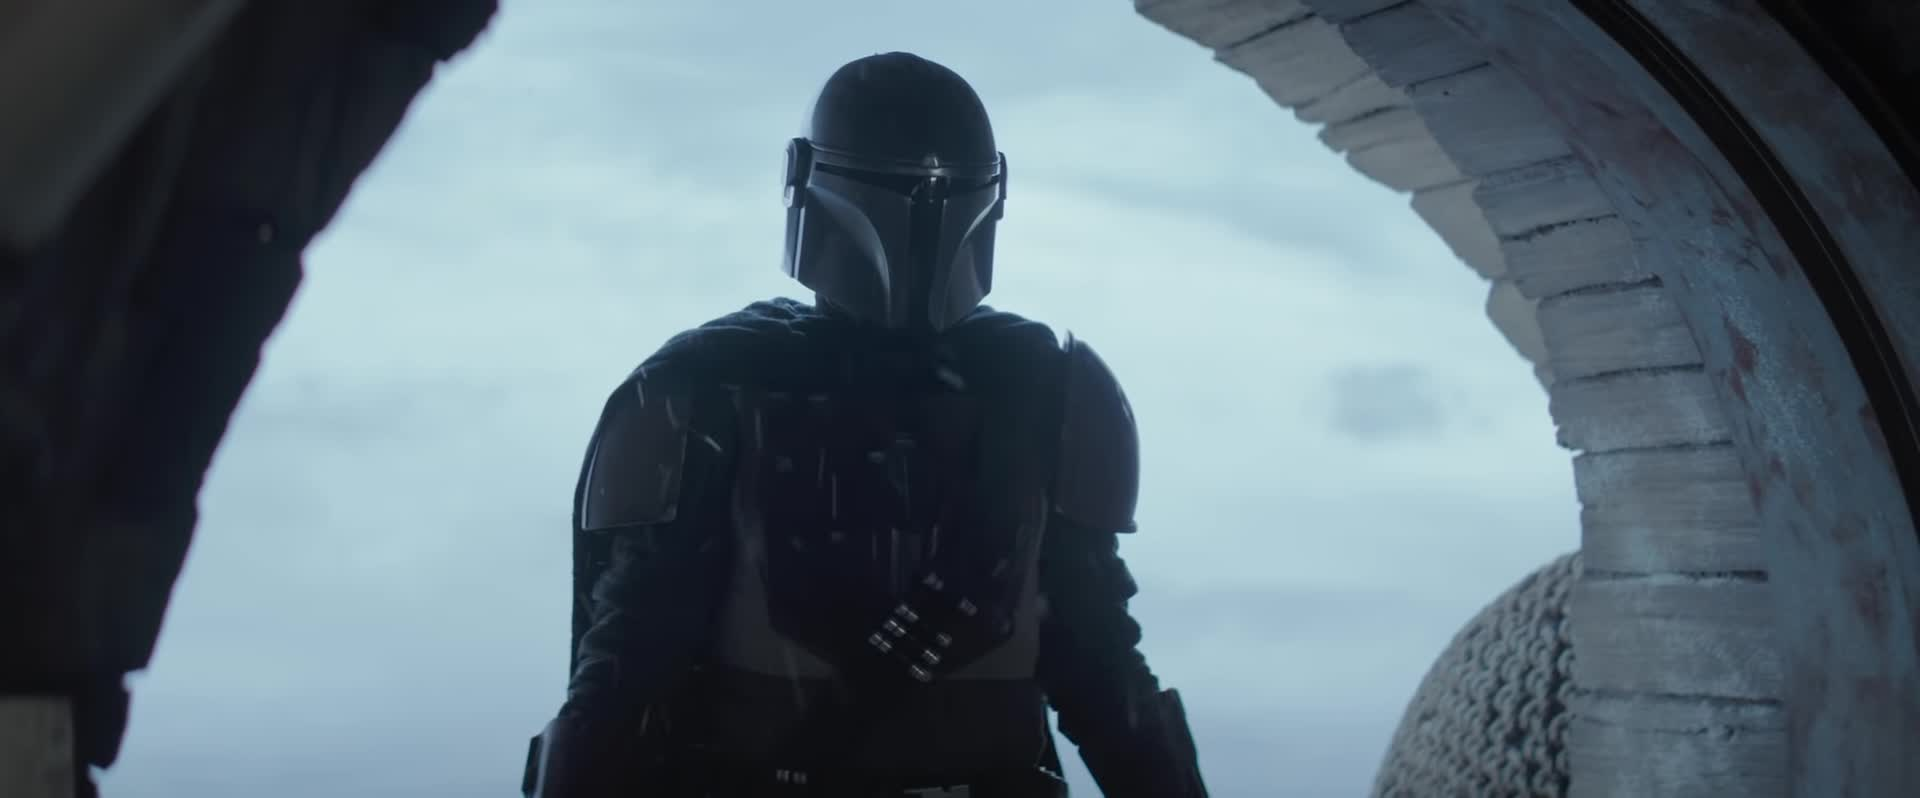 Trailer, Serie, Star Wars, Disney, Disney+, The Mandalorian, Mandalorian